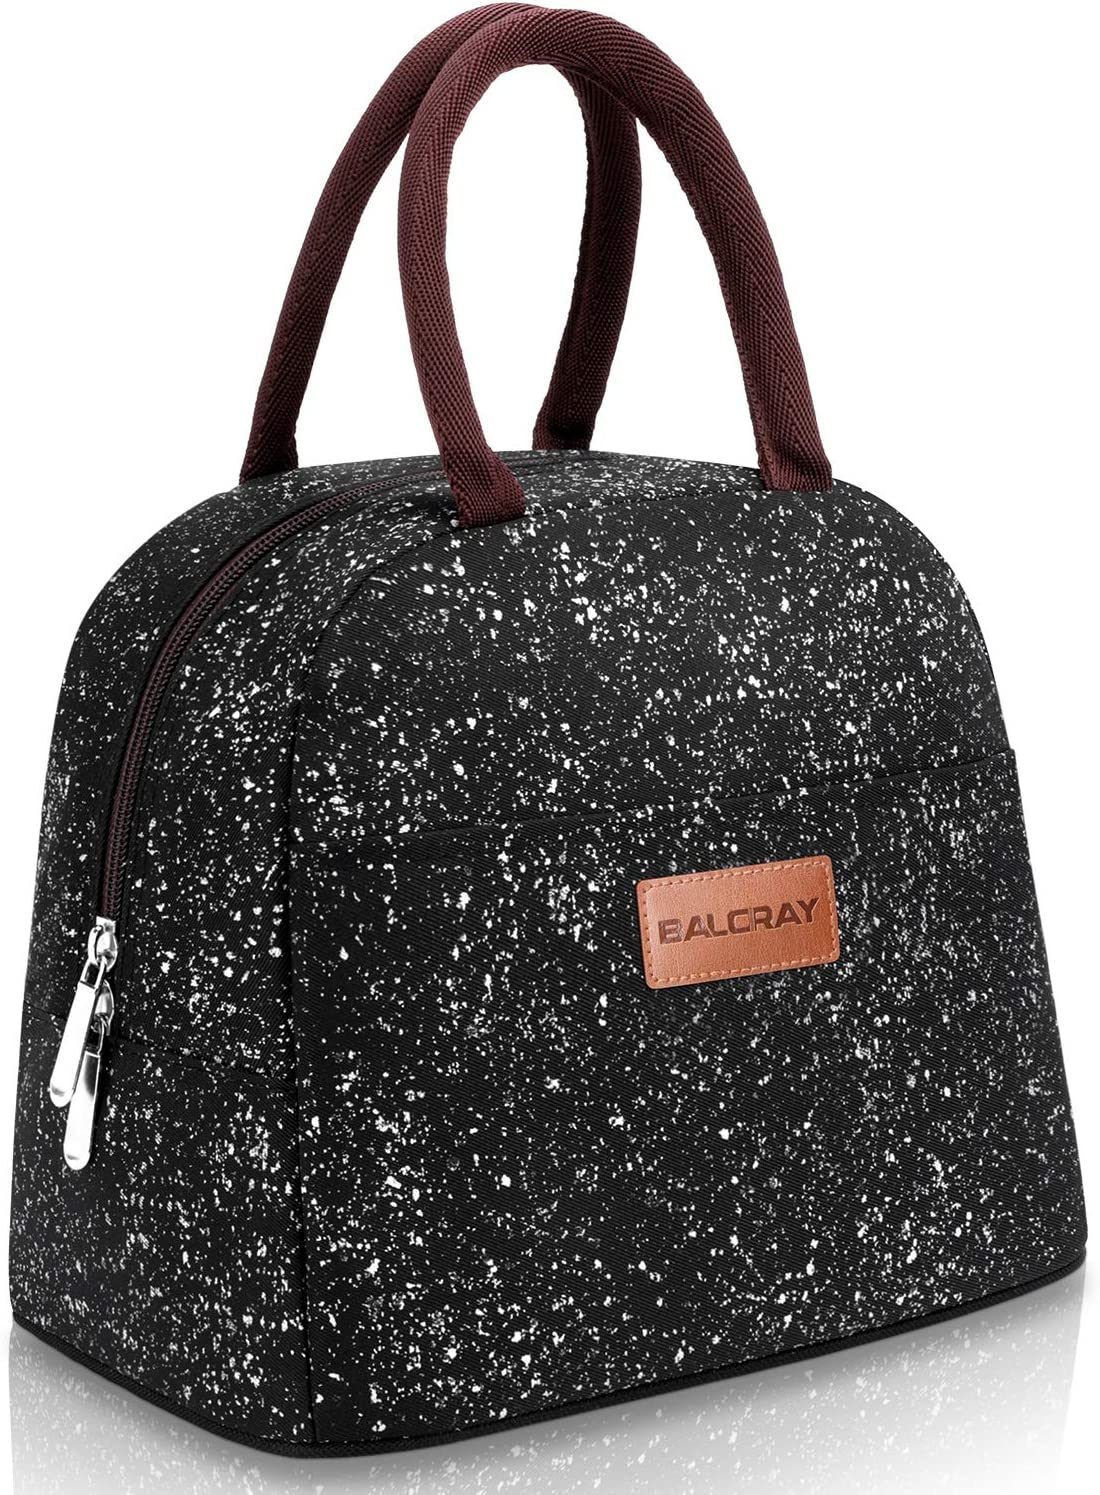 Black with starry